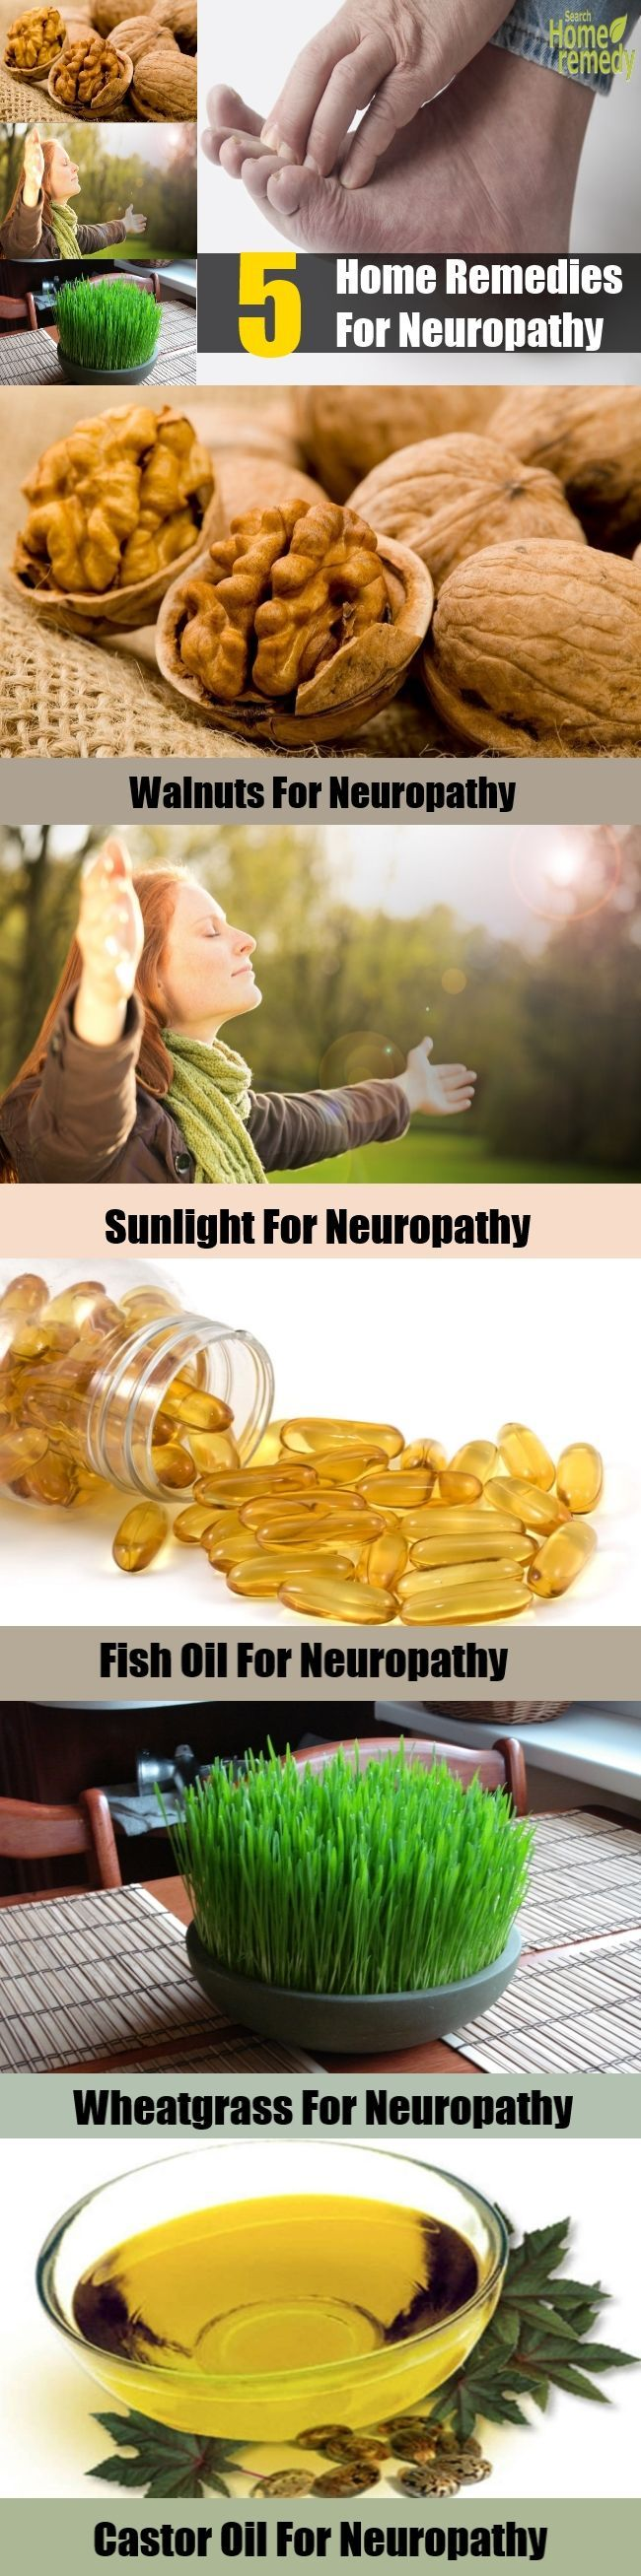 5 Effective Home Remedies For Neuropathy   healthybuzzer.com